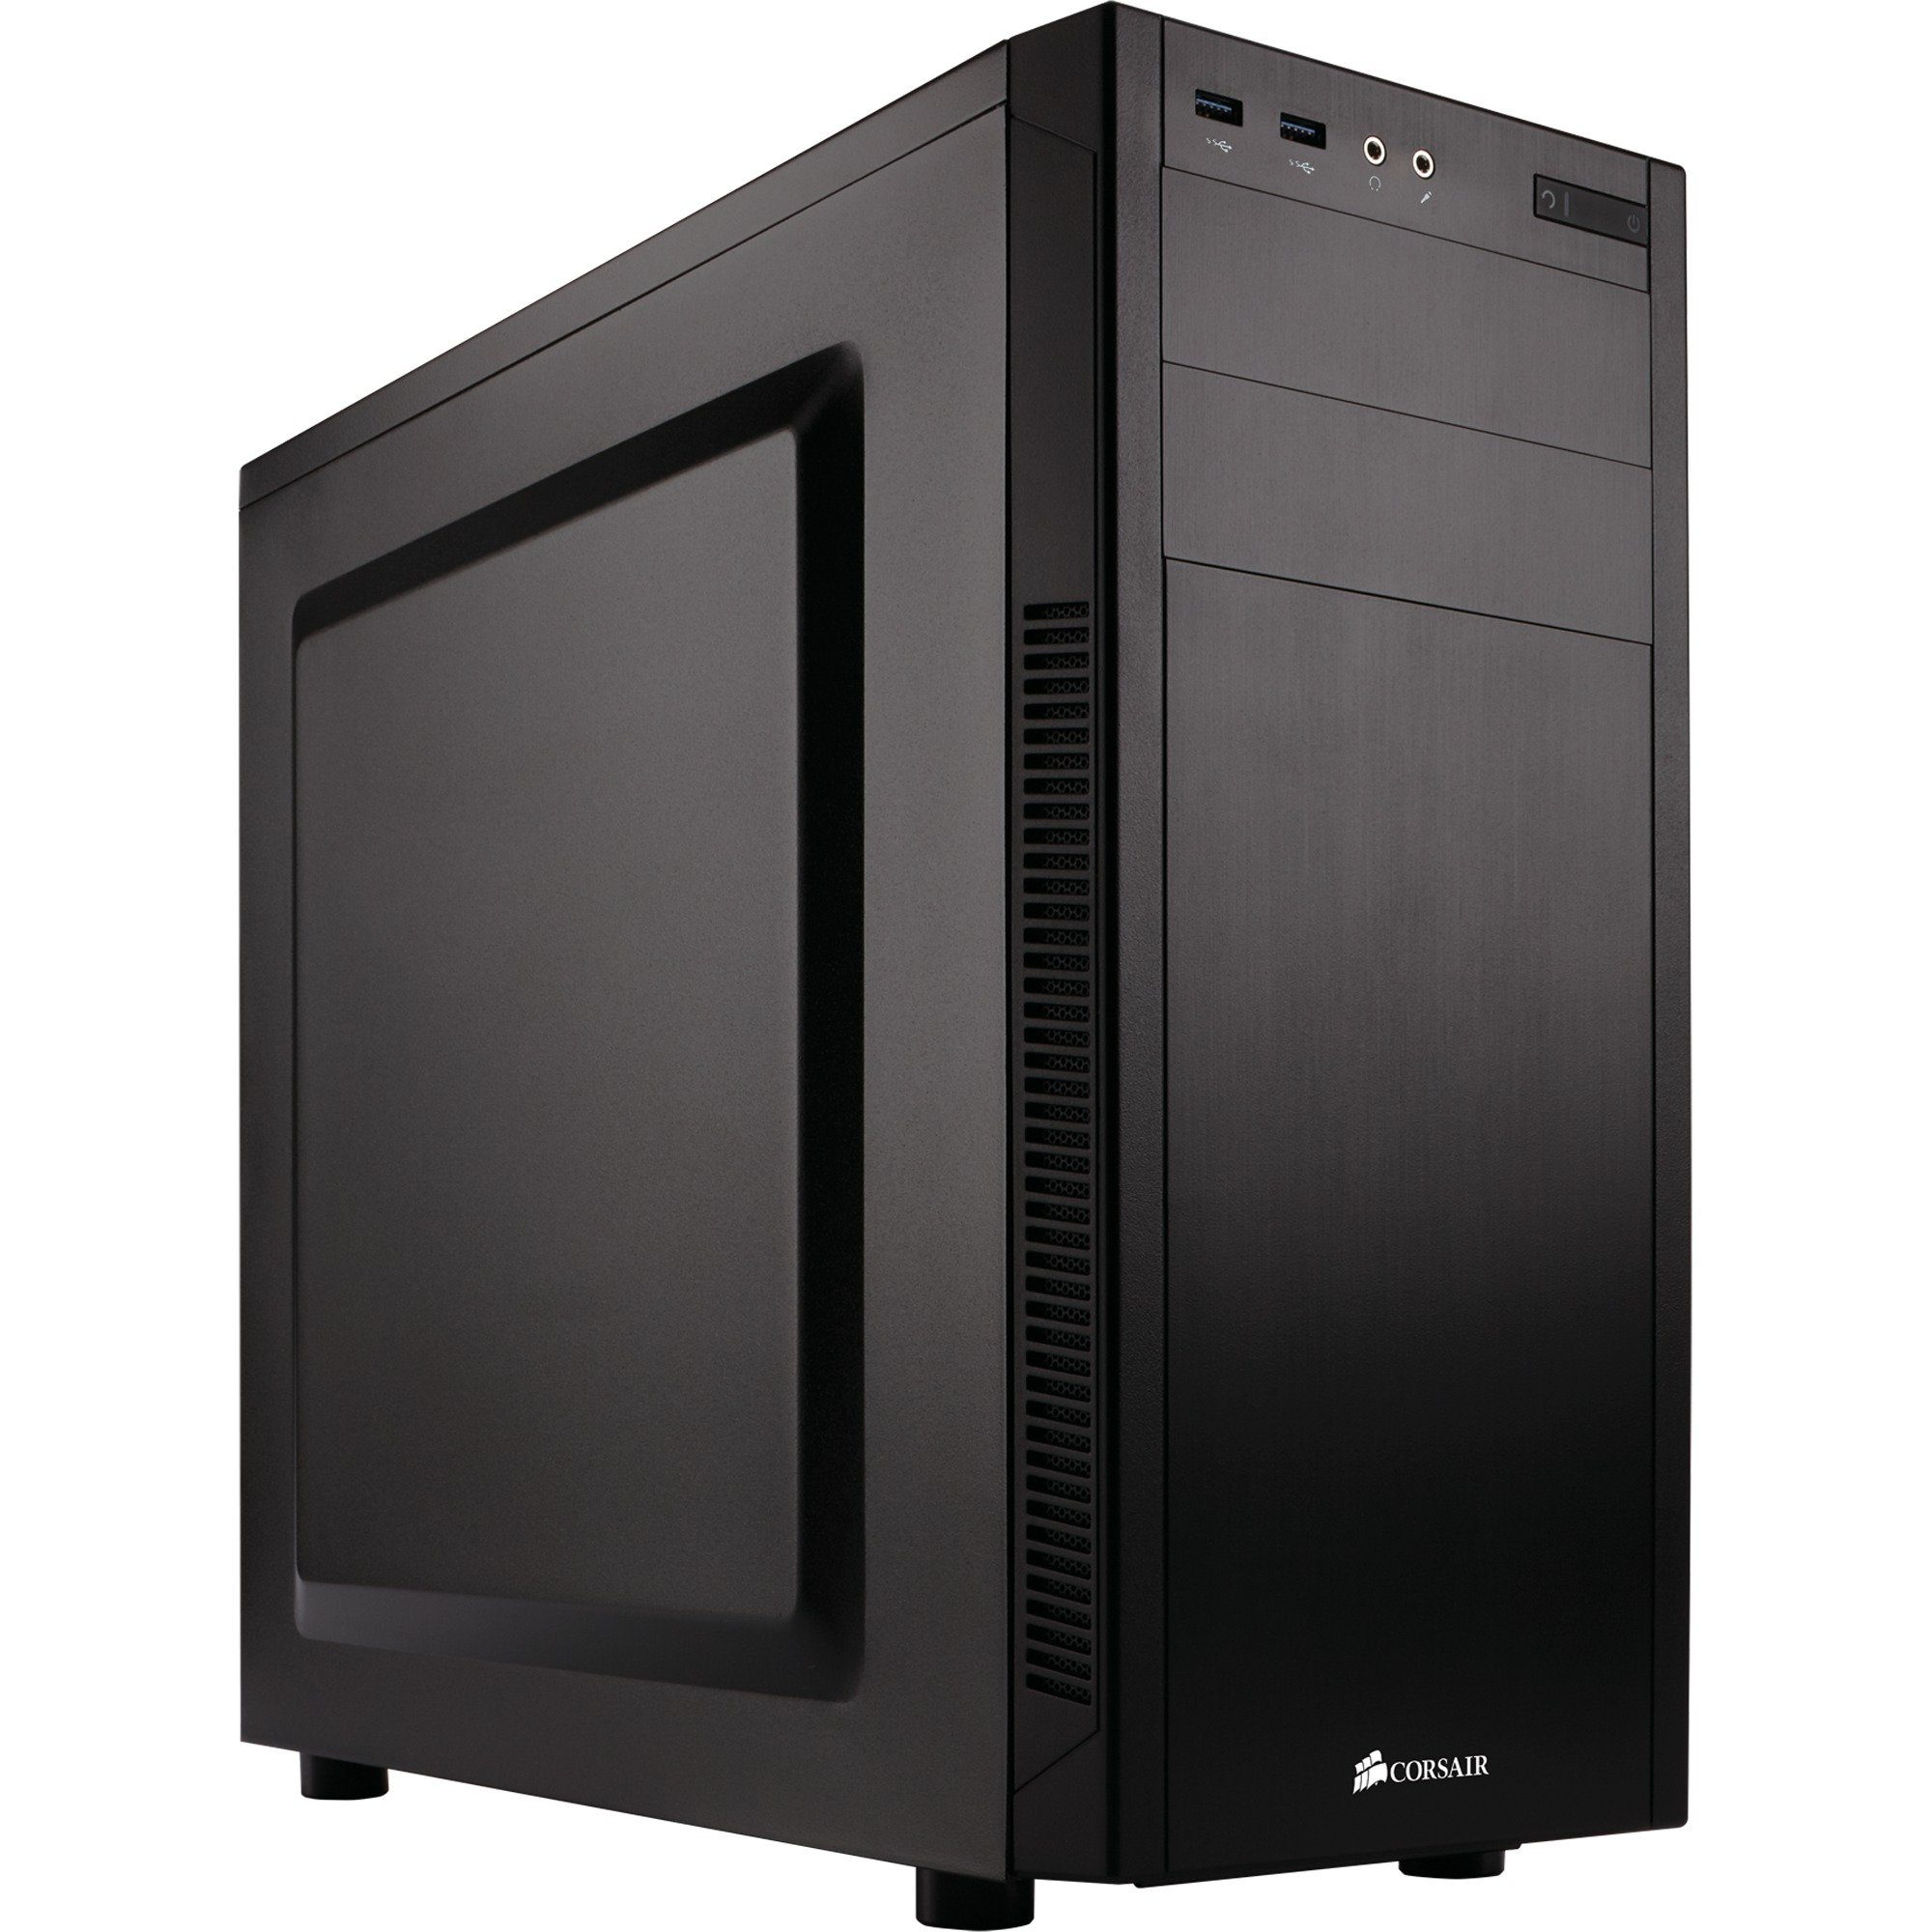 Corsair Tower-Gehäuse »Carbide 100R Silent Edition«